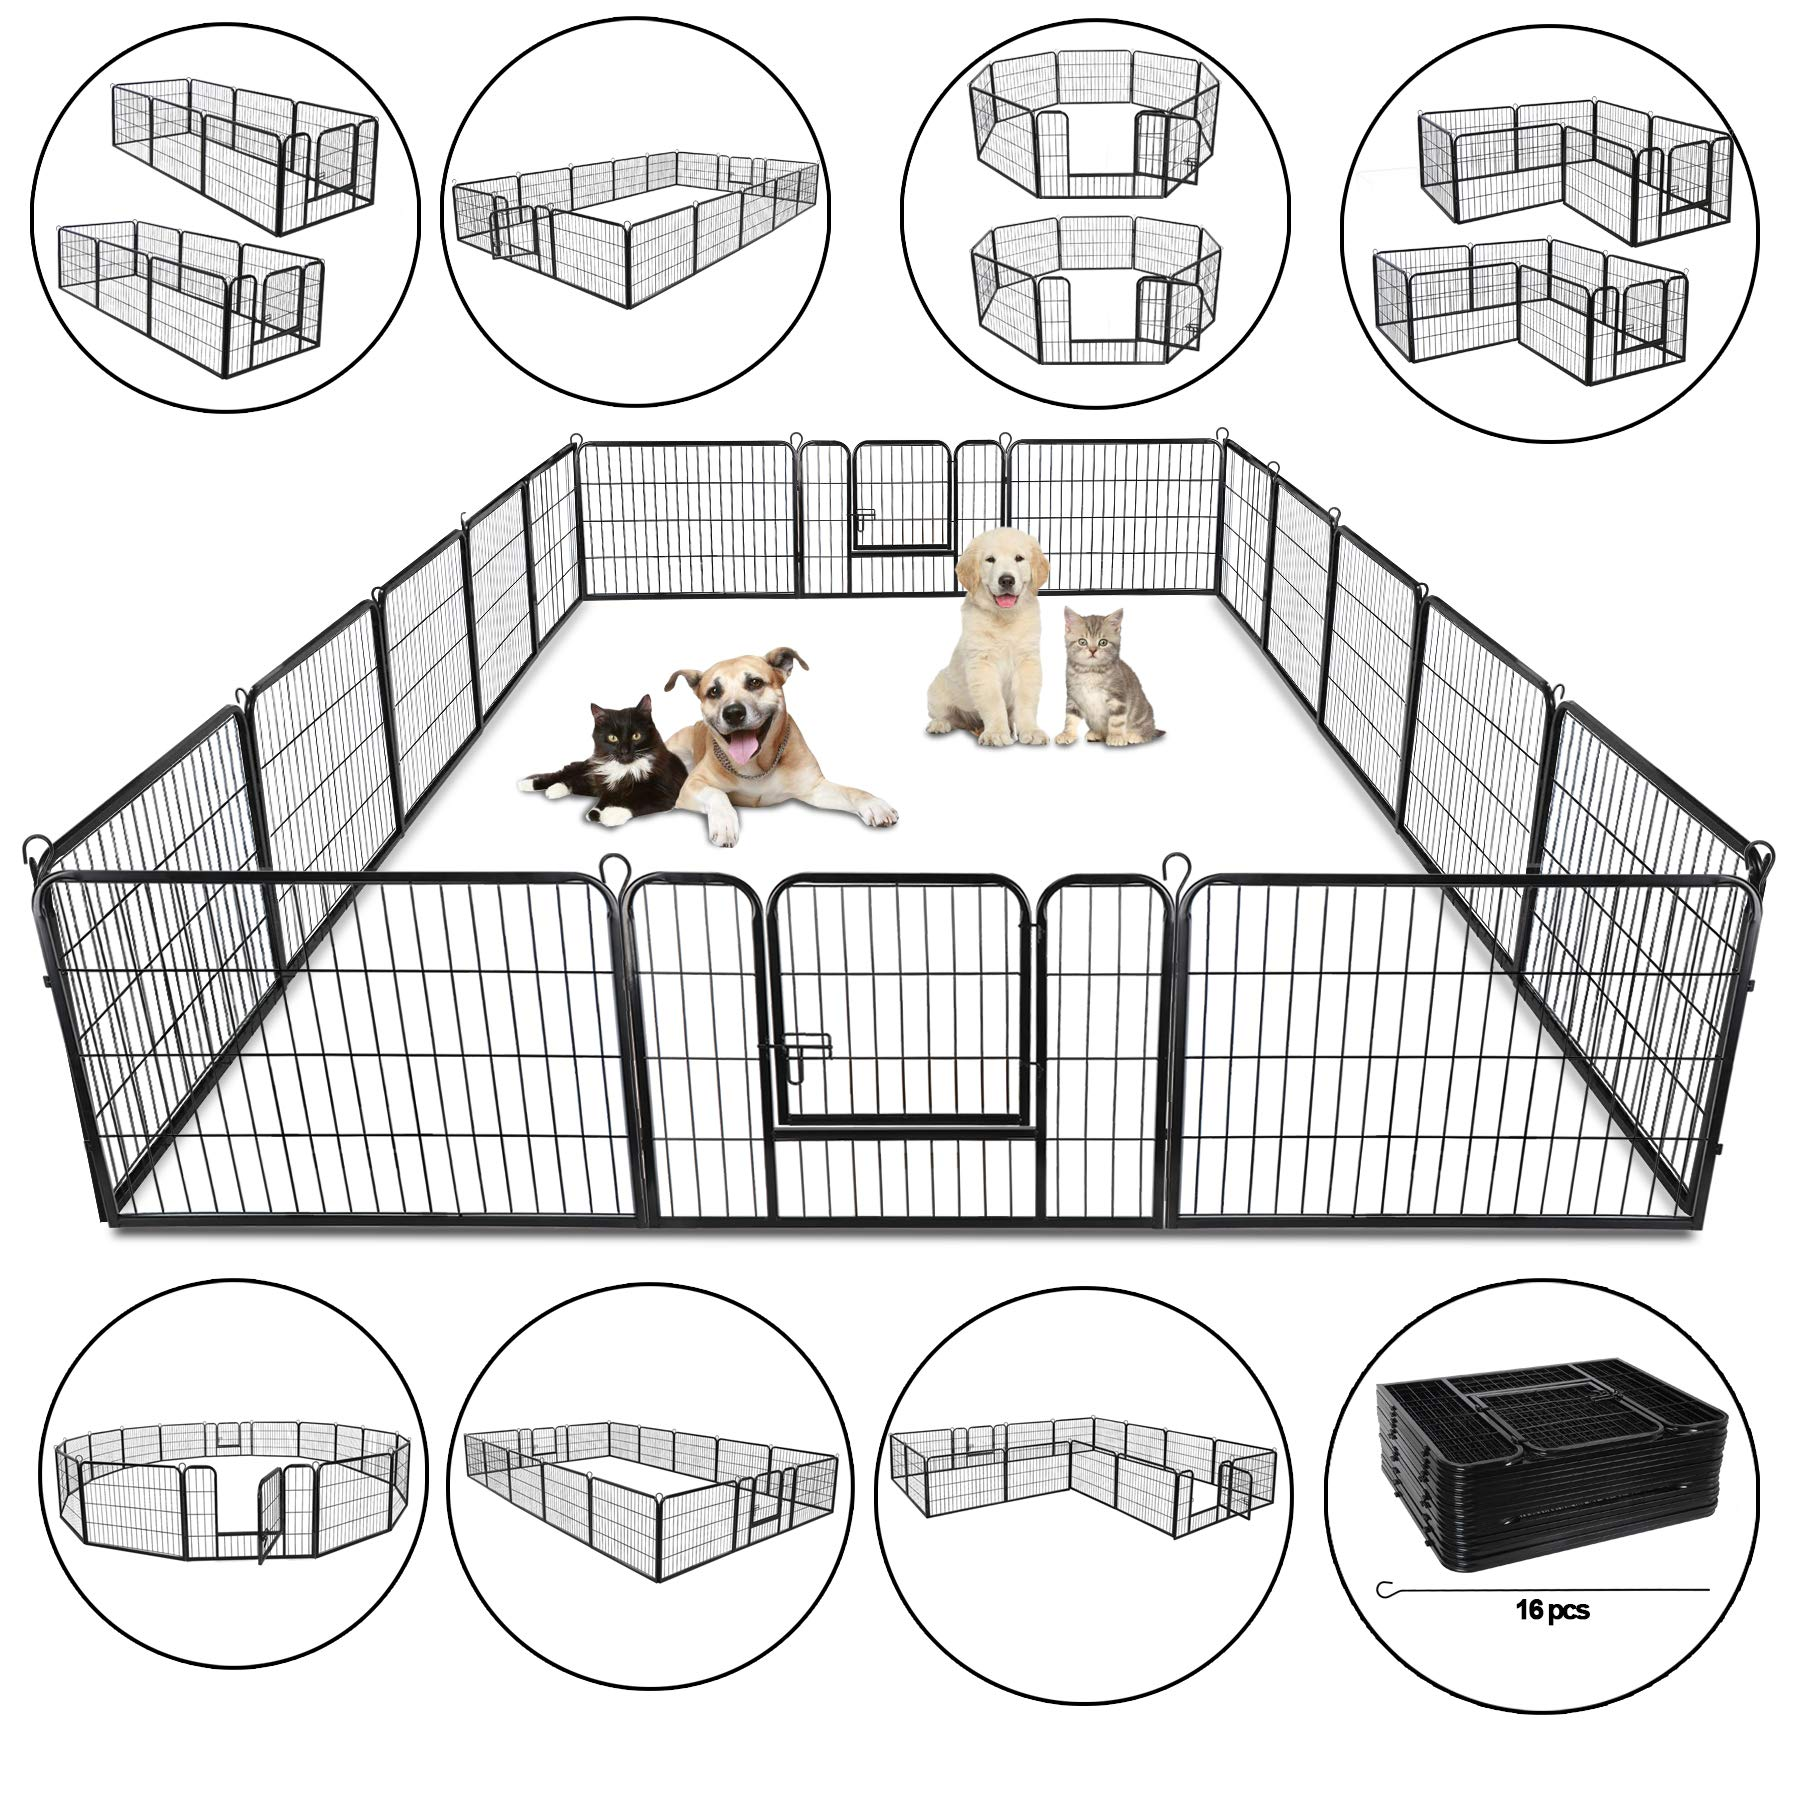 ZENY 31'' W x 24'' H Foldable Metal Exercise Pen & Pet Playpen Puppy Cat Exercise Fence Barrier Playpen Kennel - 16 Panels by ZENY